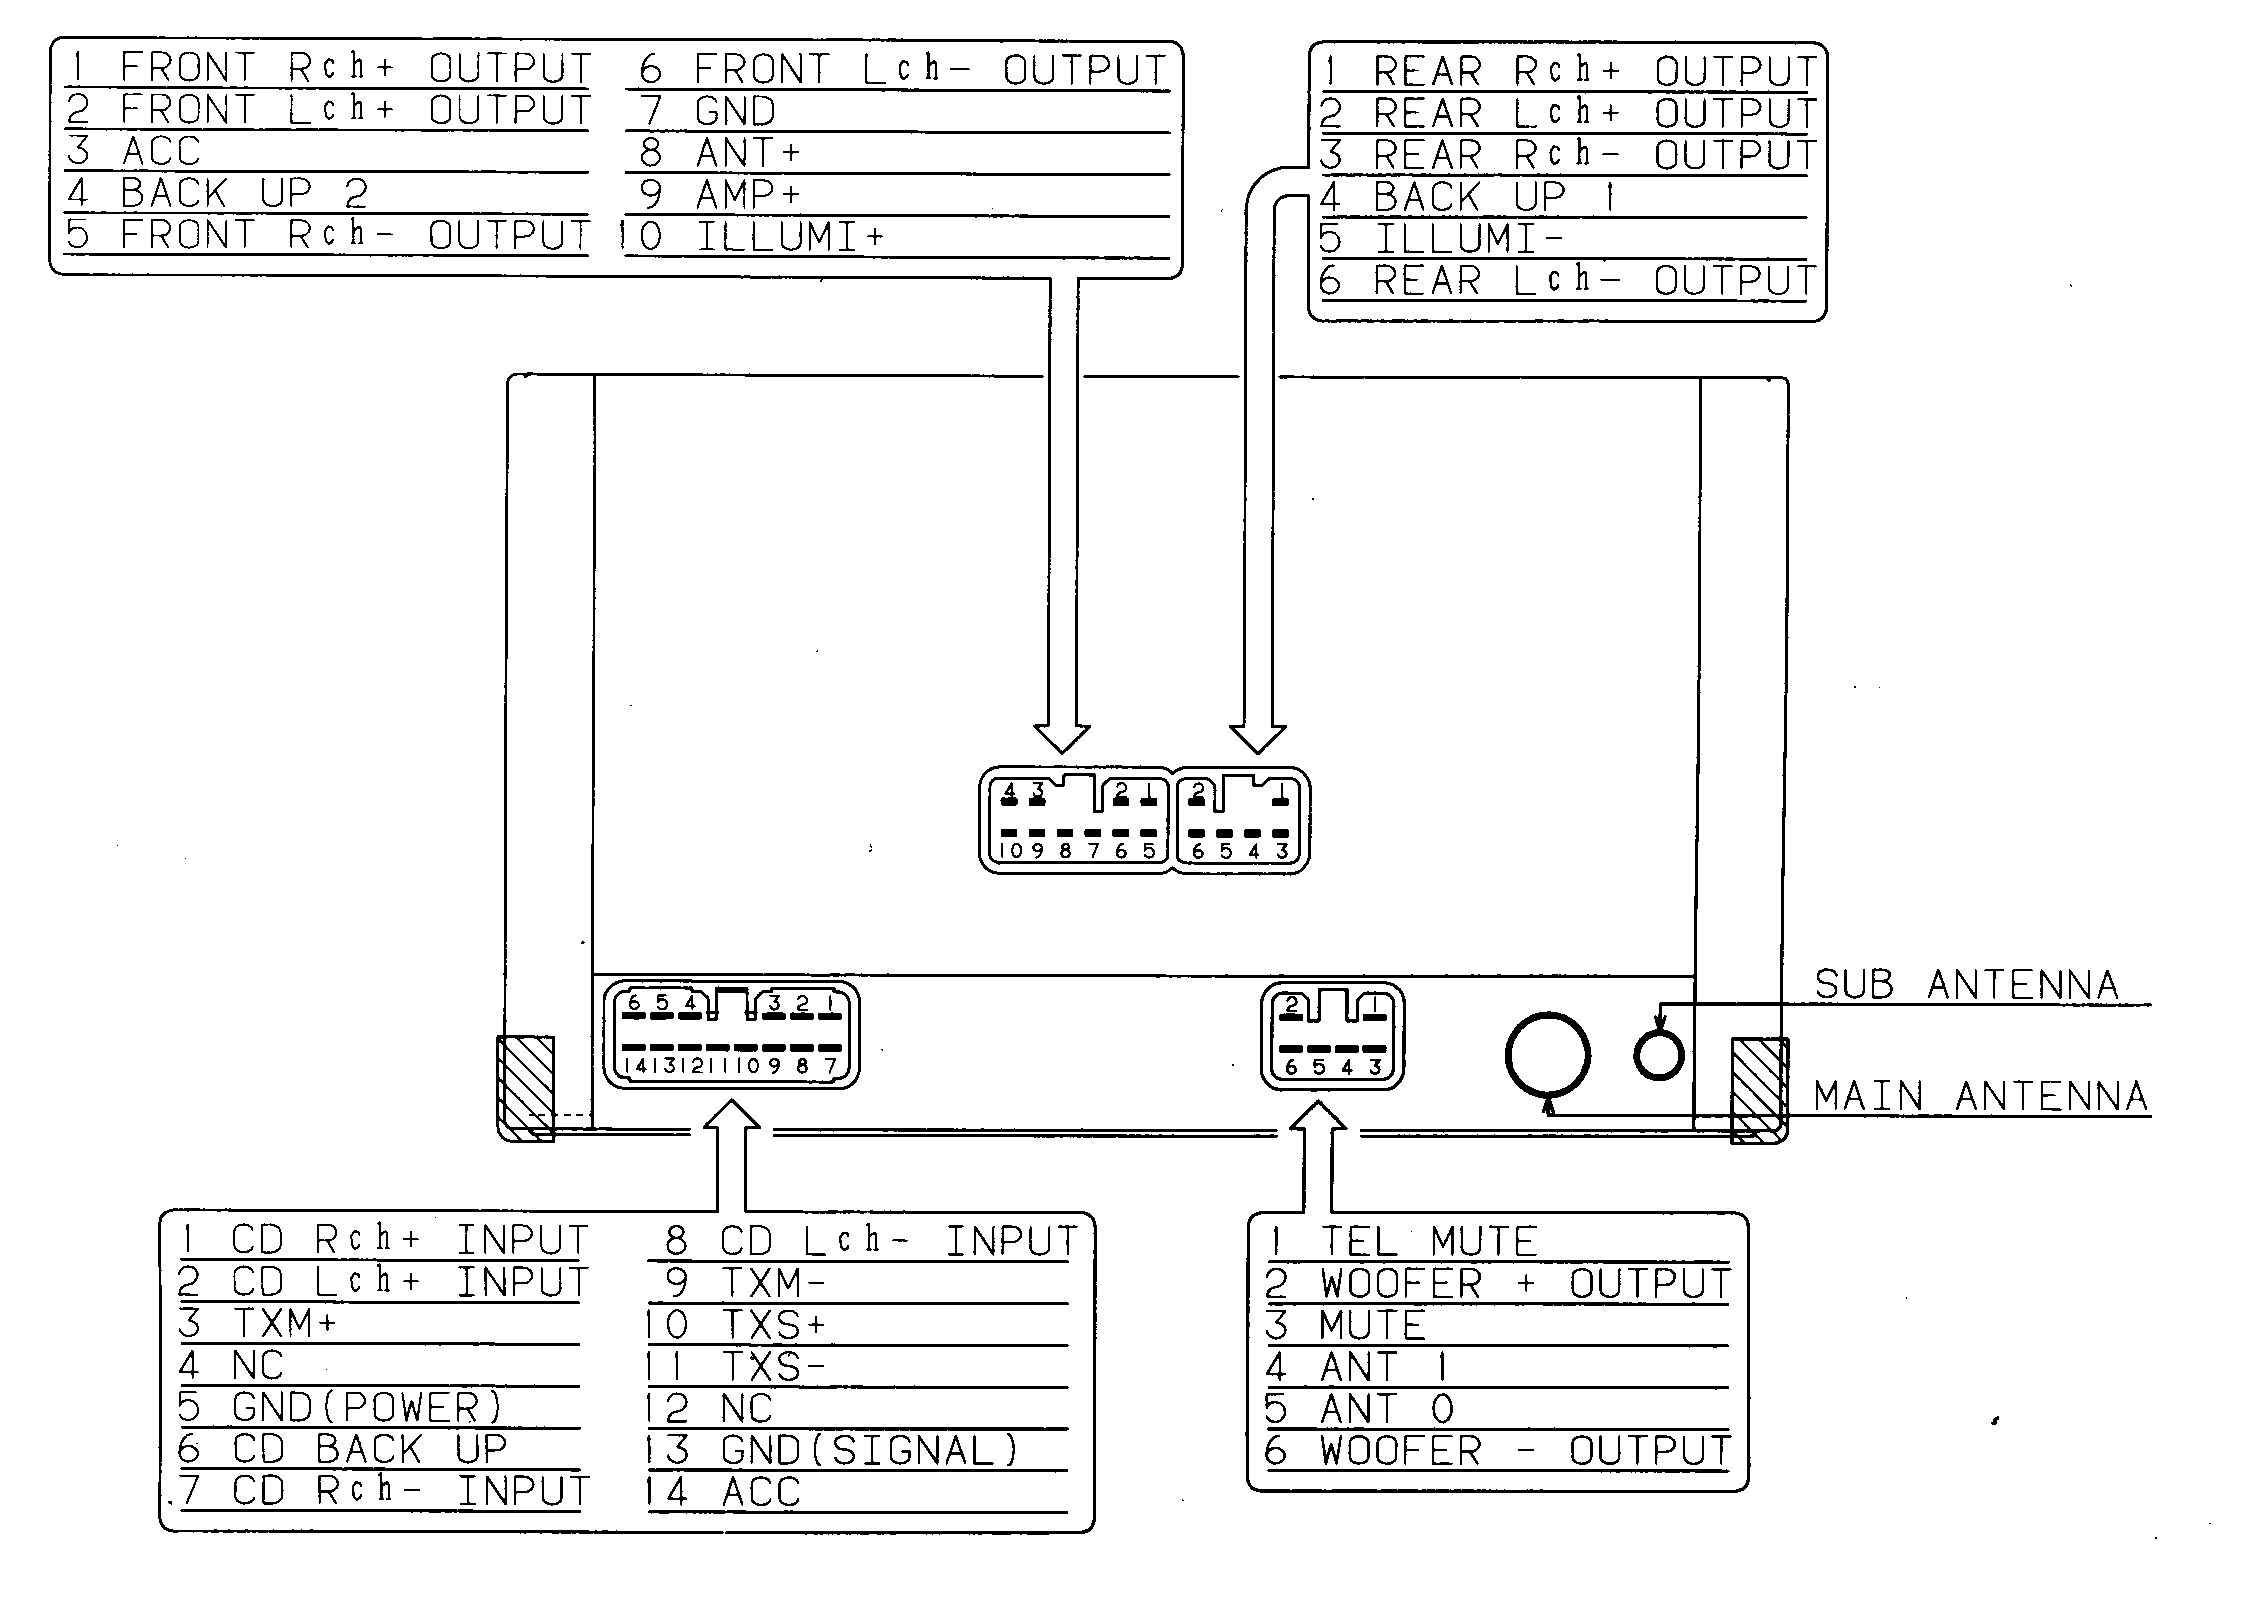 WireHarnessLexus121001 car audio wire diagram codes lexus factory car stereo repair wiring diagram for car audio at creativeand.co